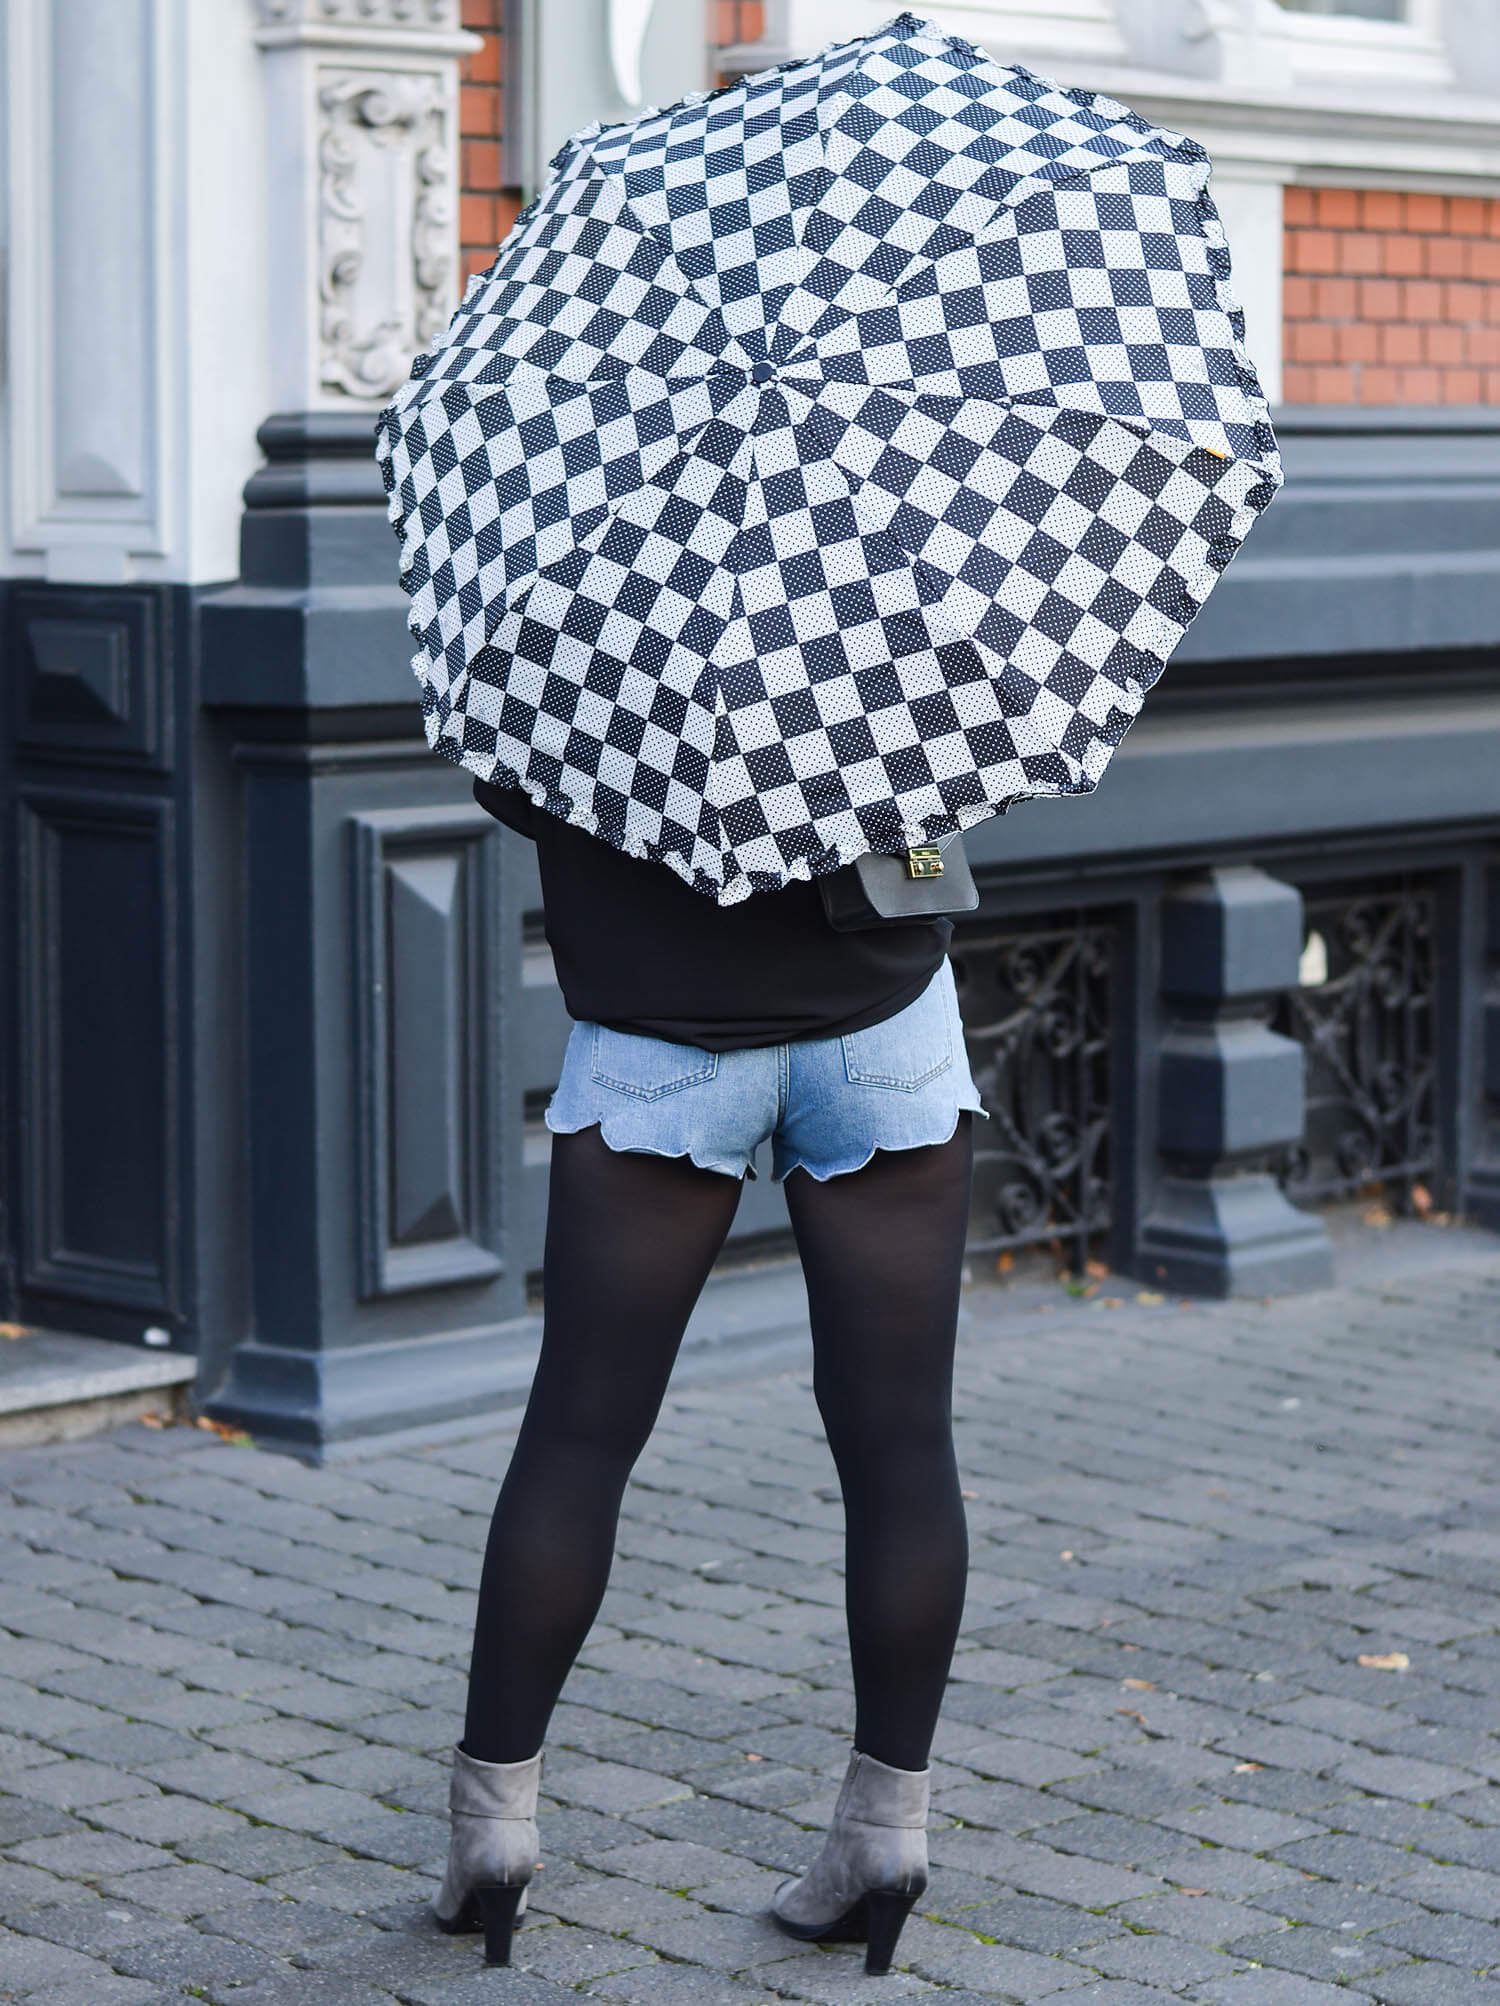 Kationette-fashionblog-nrw-Outfit-Denim-Hotpants-Black-Blouse-Furla-and-new-Pocket-Umbrella-from-Zest